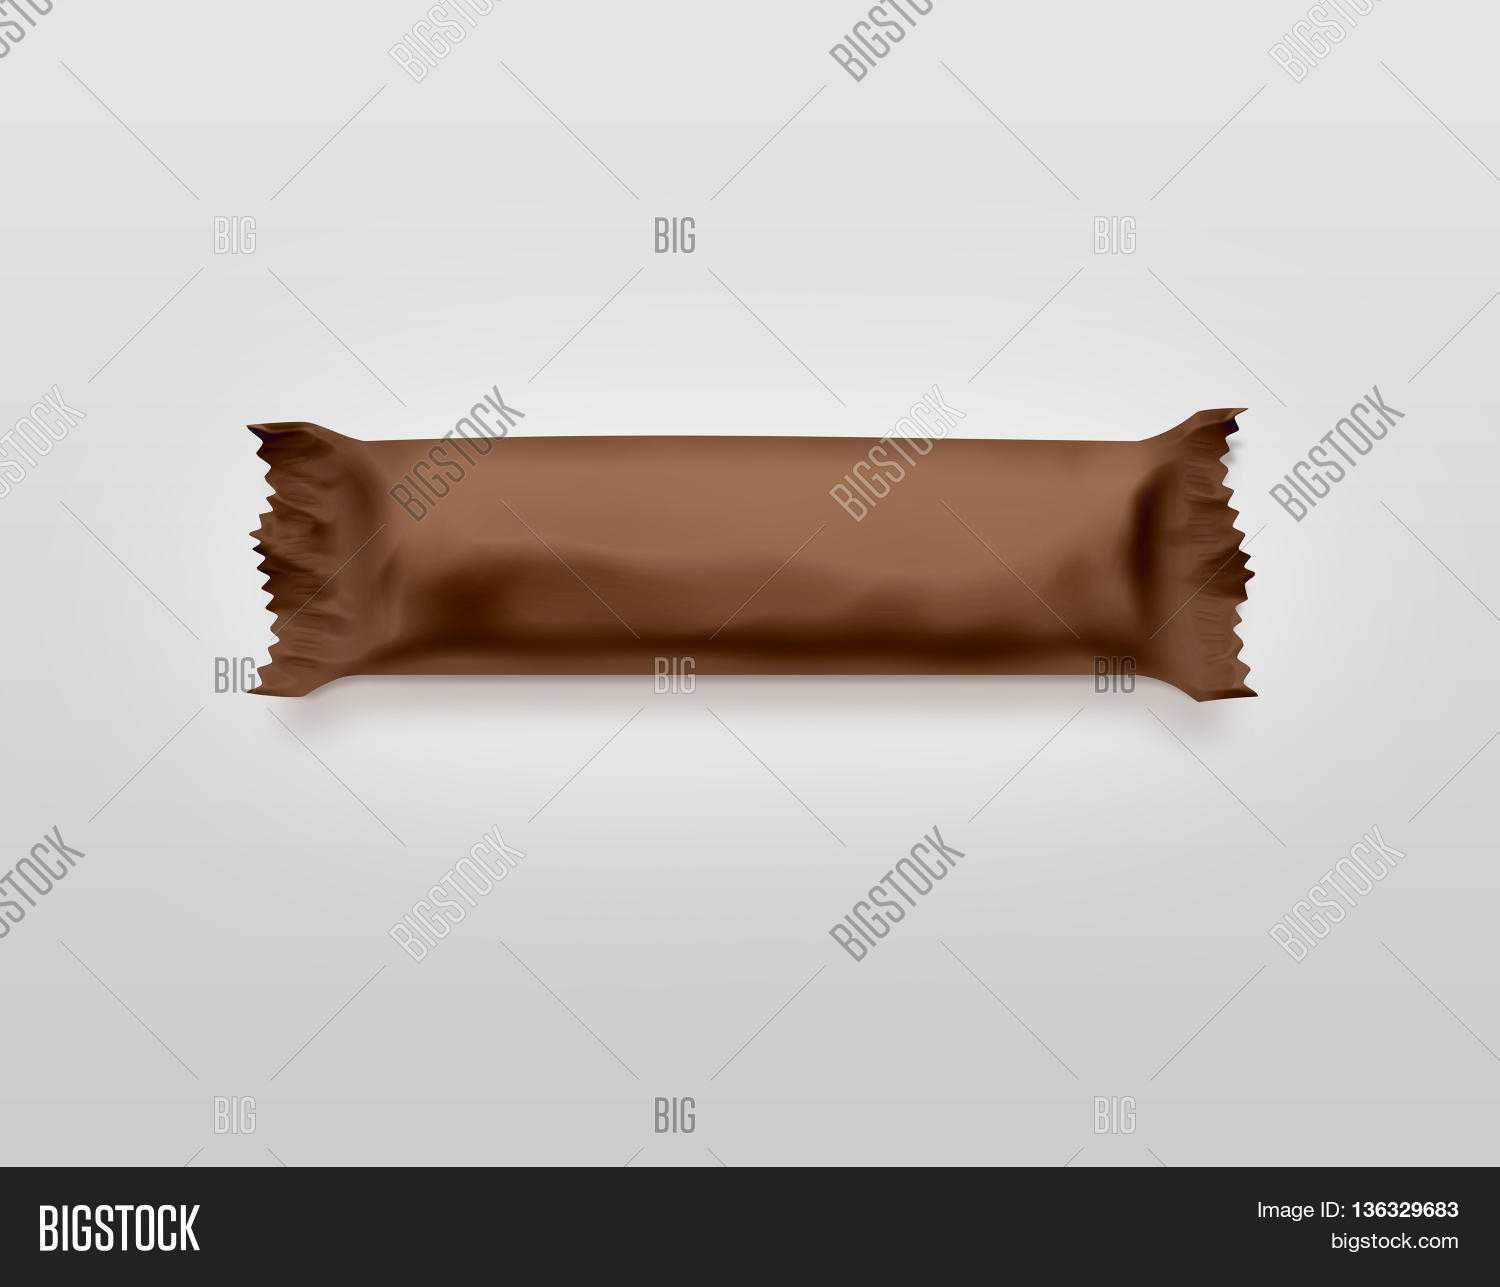 Blank Brown Candy Bar Image & Photo (Free Trial) | Bigstock In Free Blank Candy Bar Wrapper Template